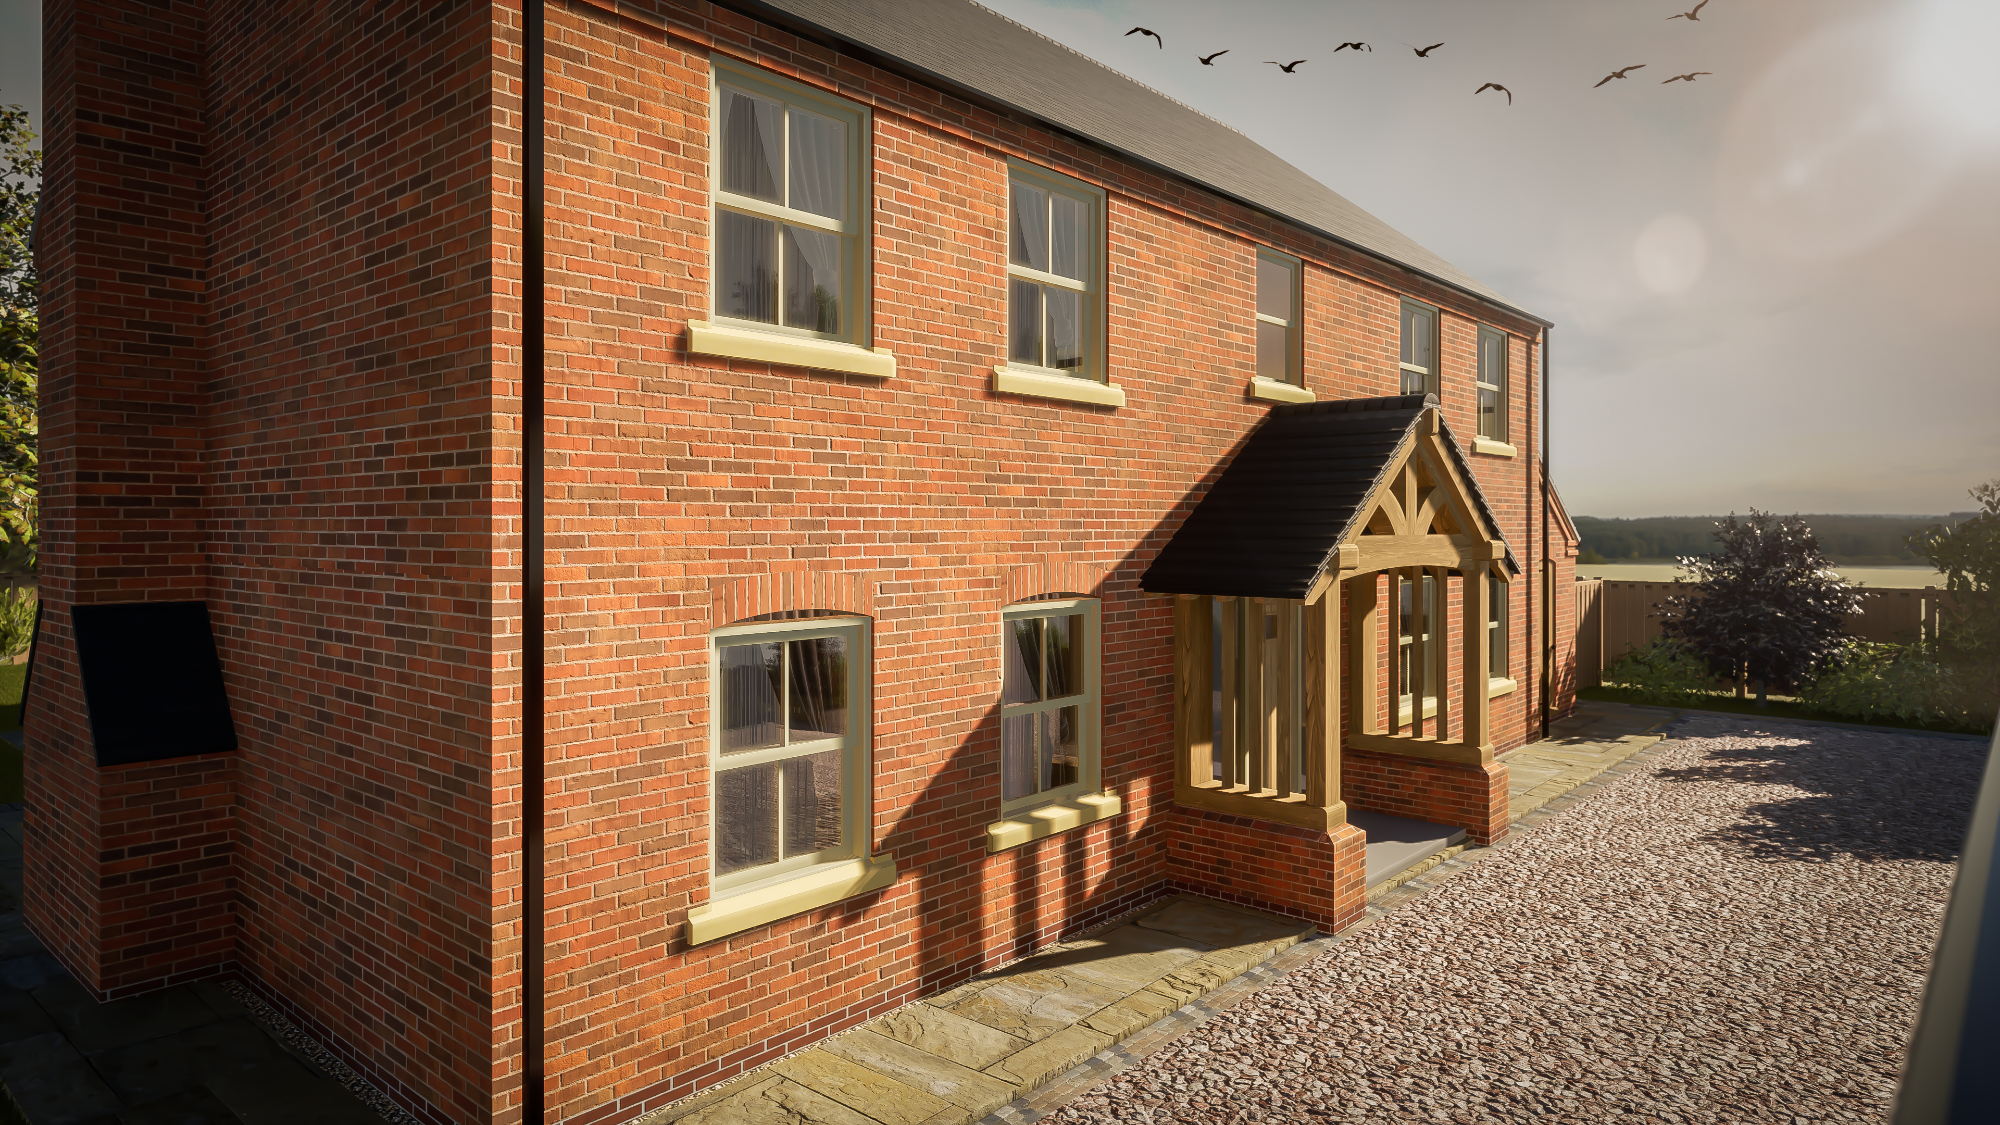 Planning permissions approved, project updates and latest news from Fytche-Taylor Planning – planning consultants for Lincoln and Lincolnshire